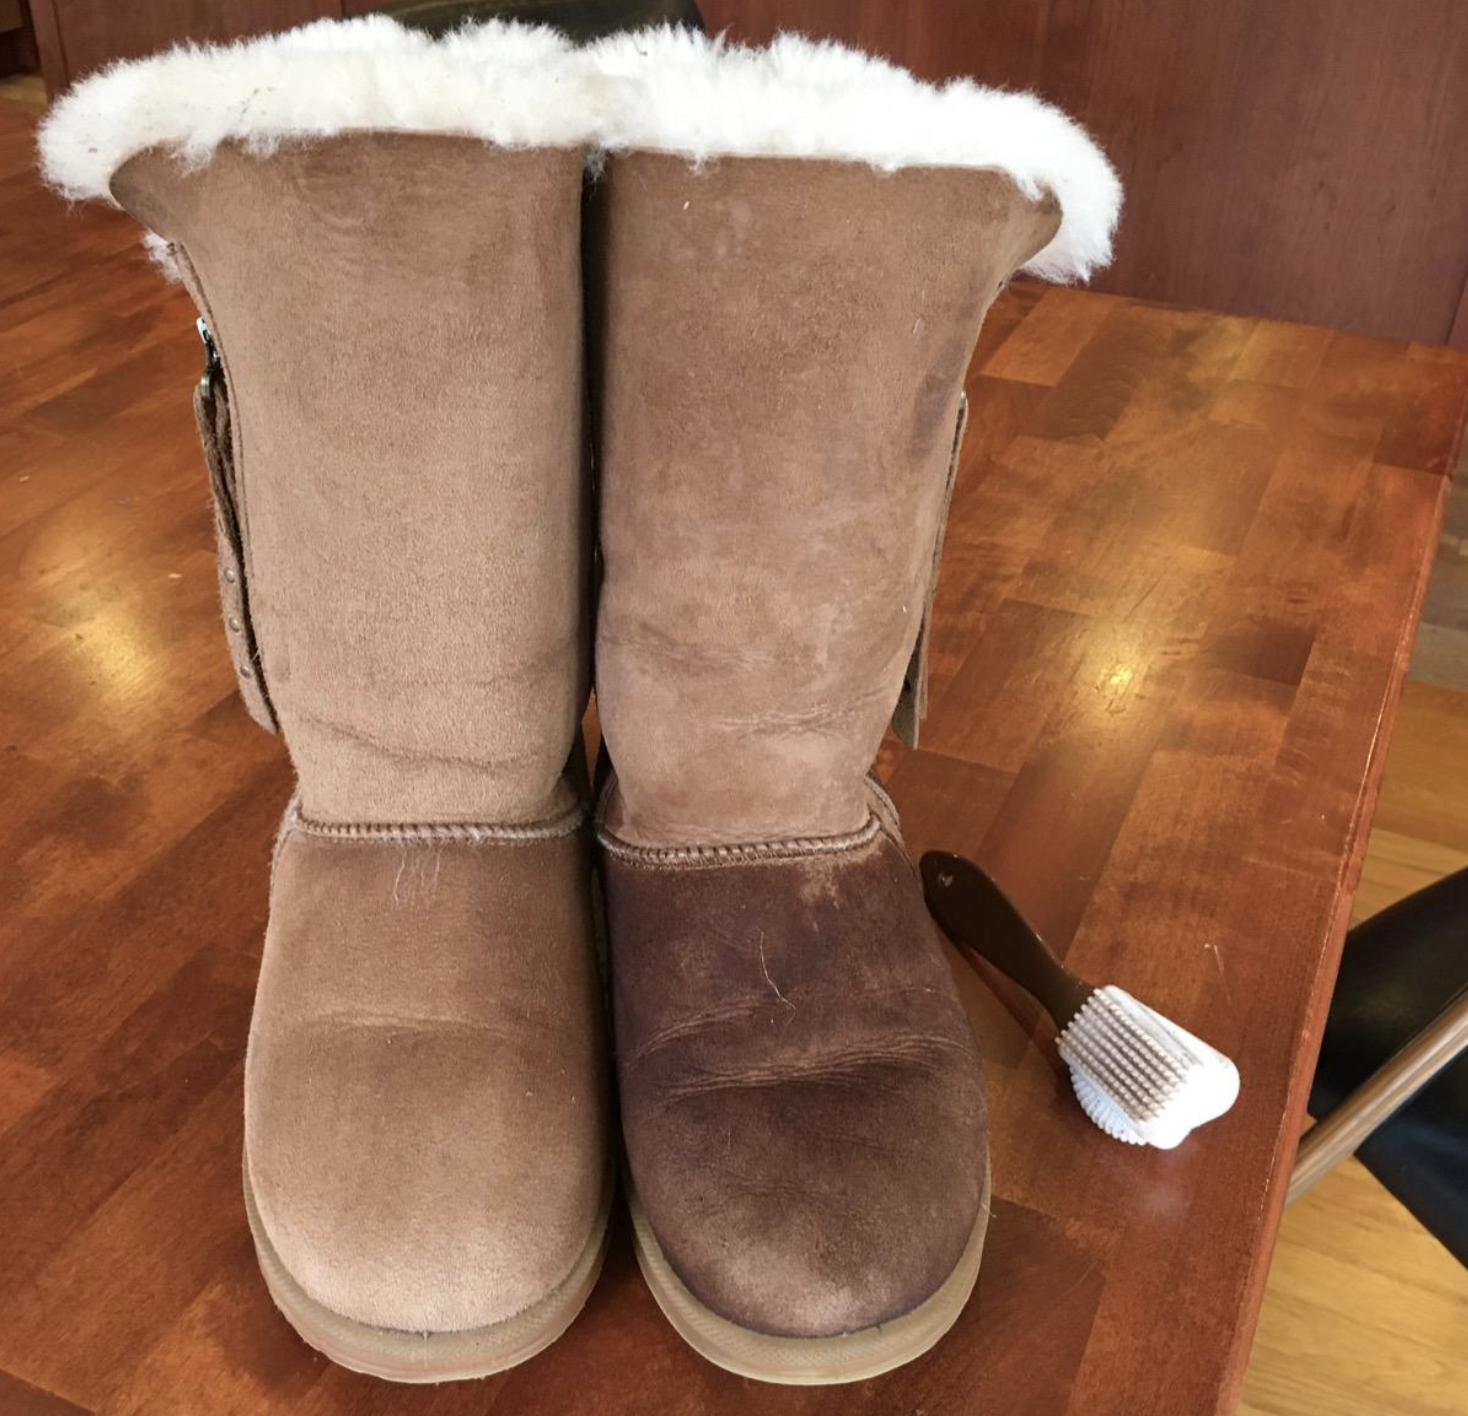 reviewer photo of Ugg boots, one with stains and the other looking new from the brush